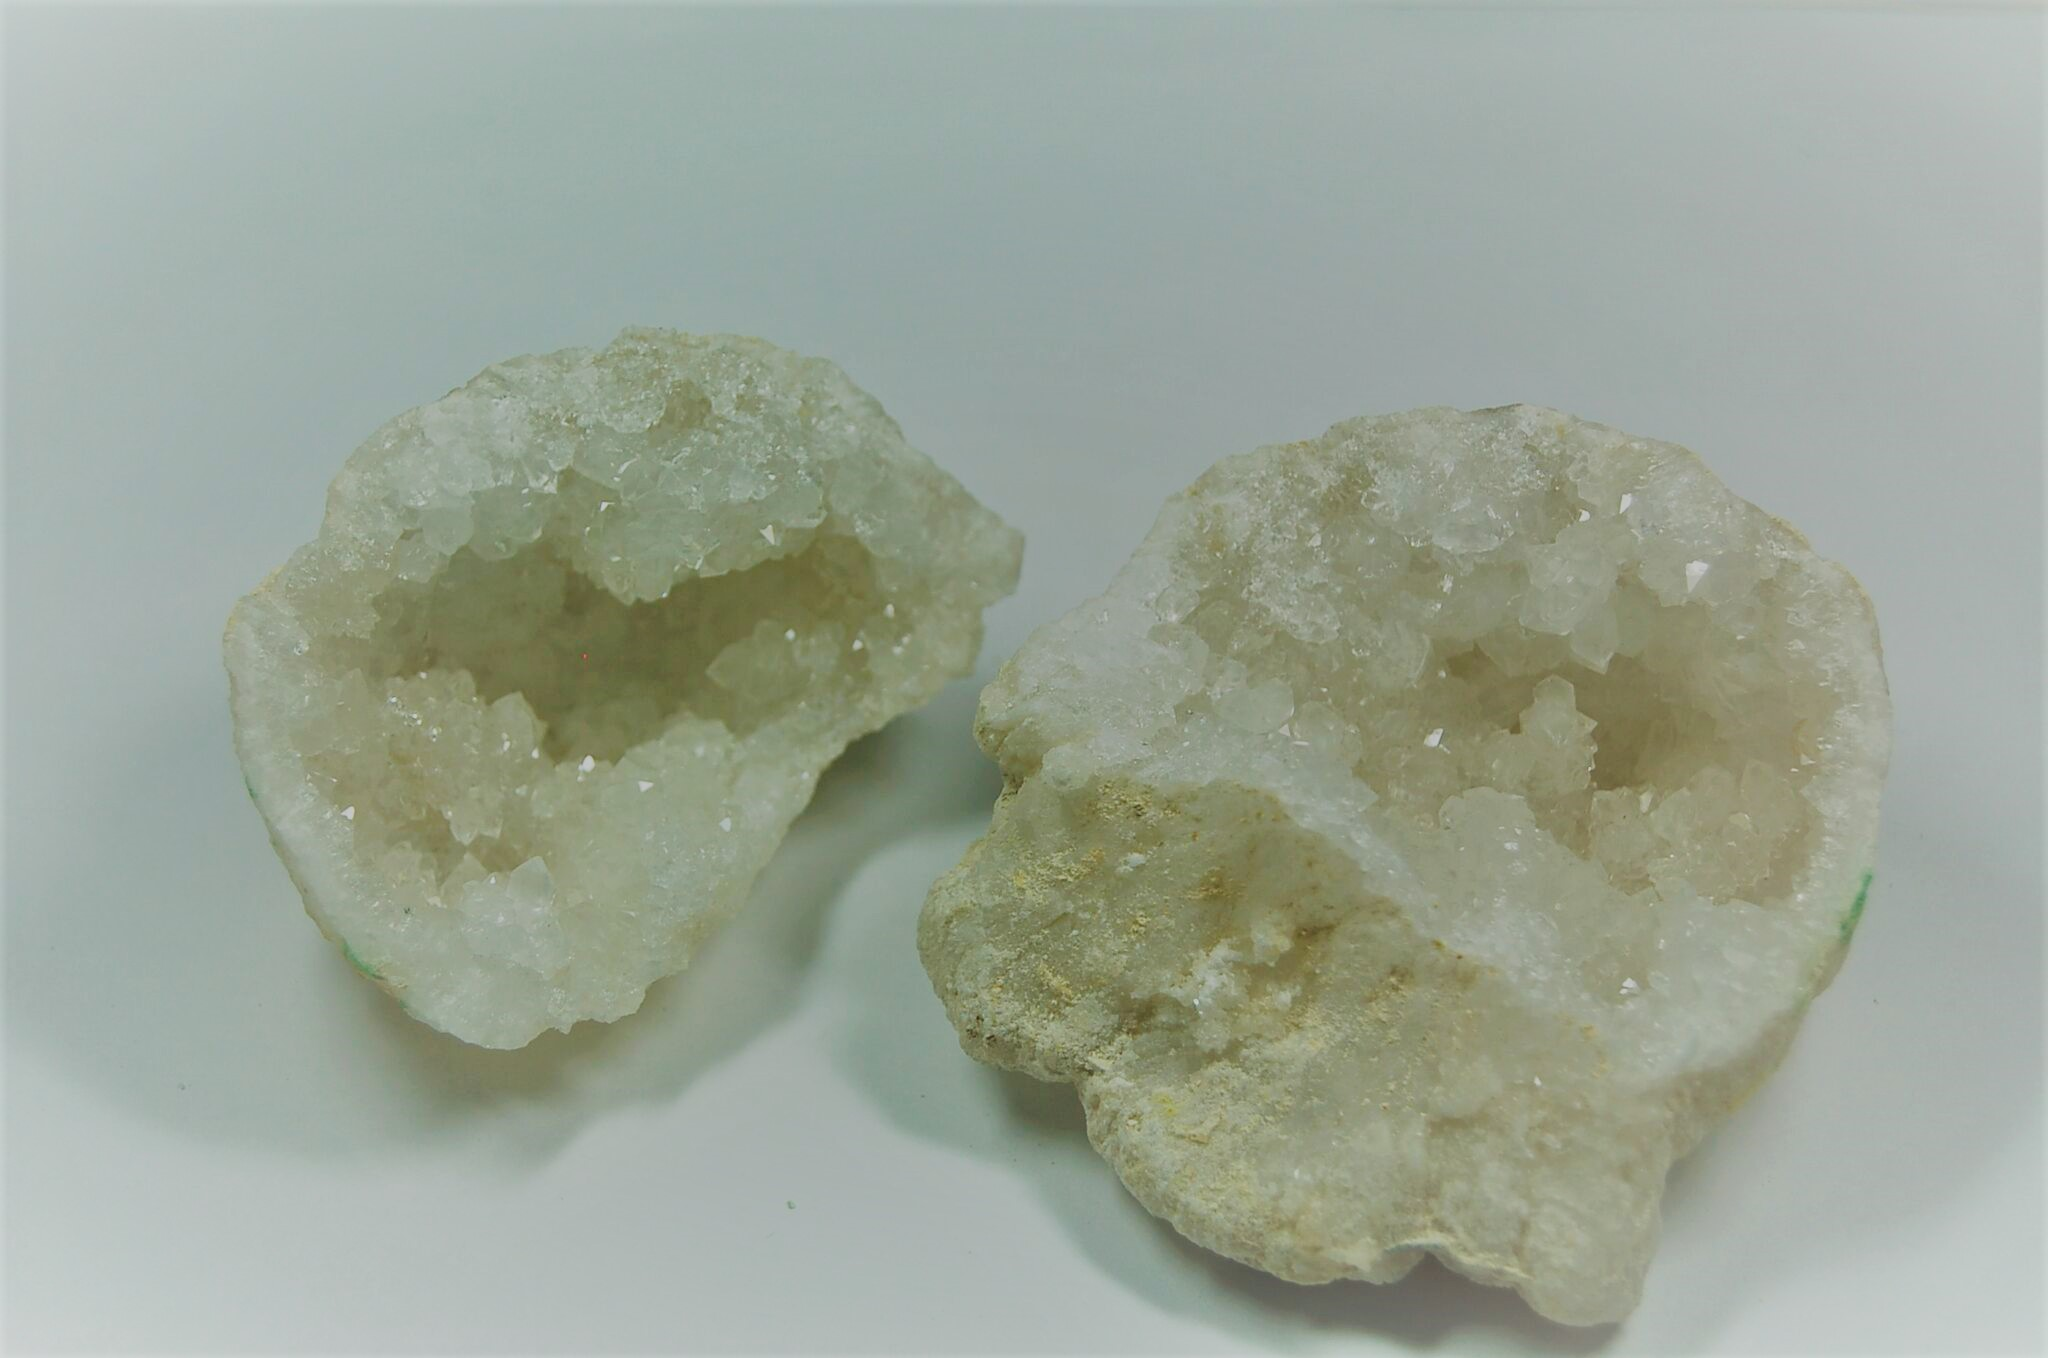 Clear Quartz Natural Geodes (Morocco)